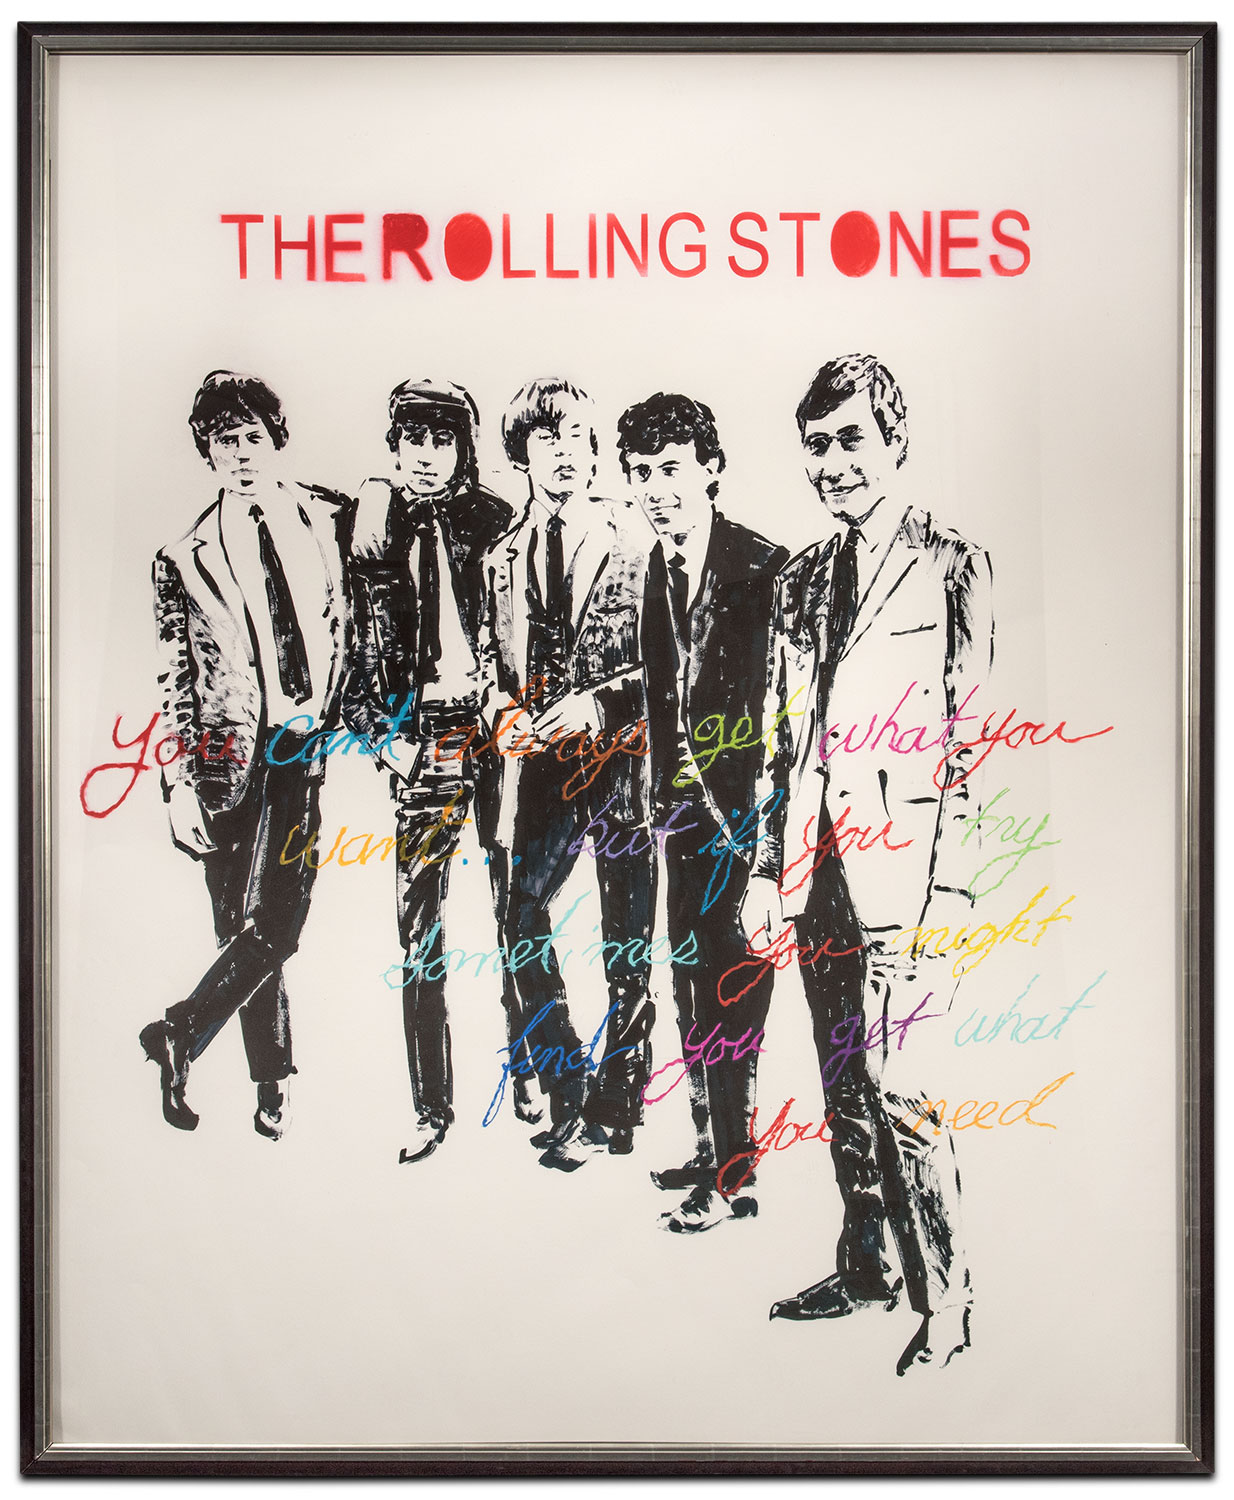 Sofas In Value City Furniture The Rolling Stones Framed Print | Value City Furniture And